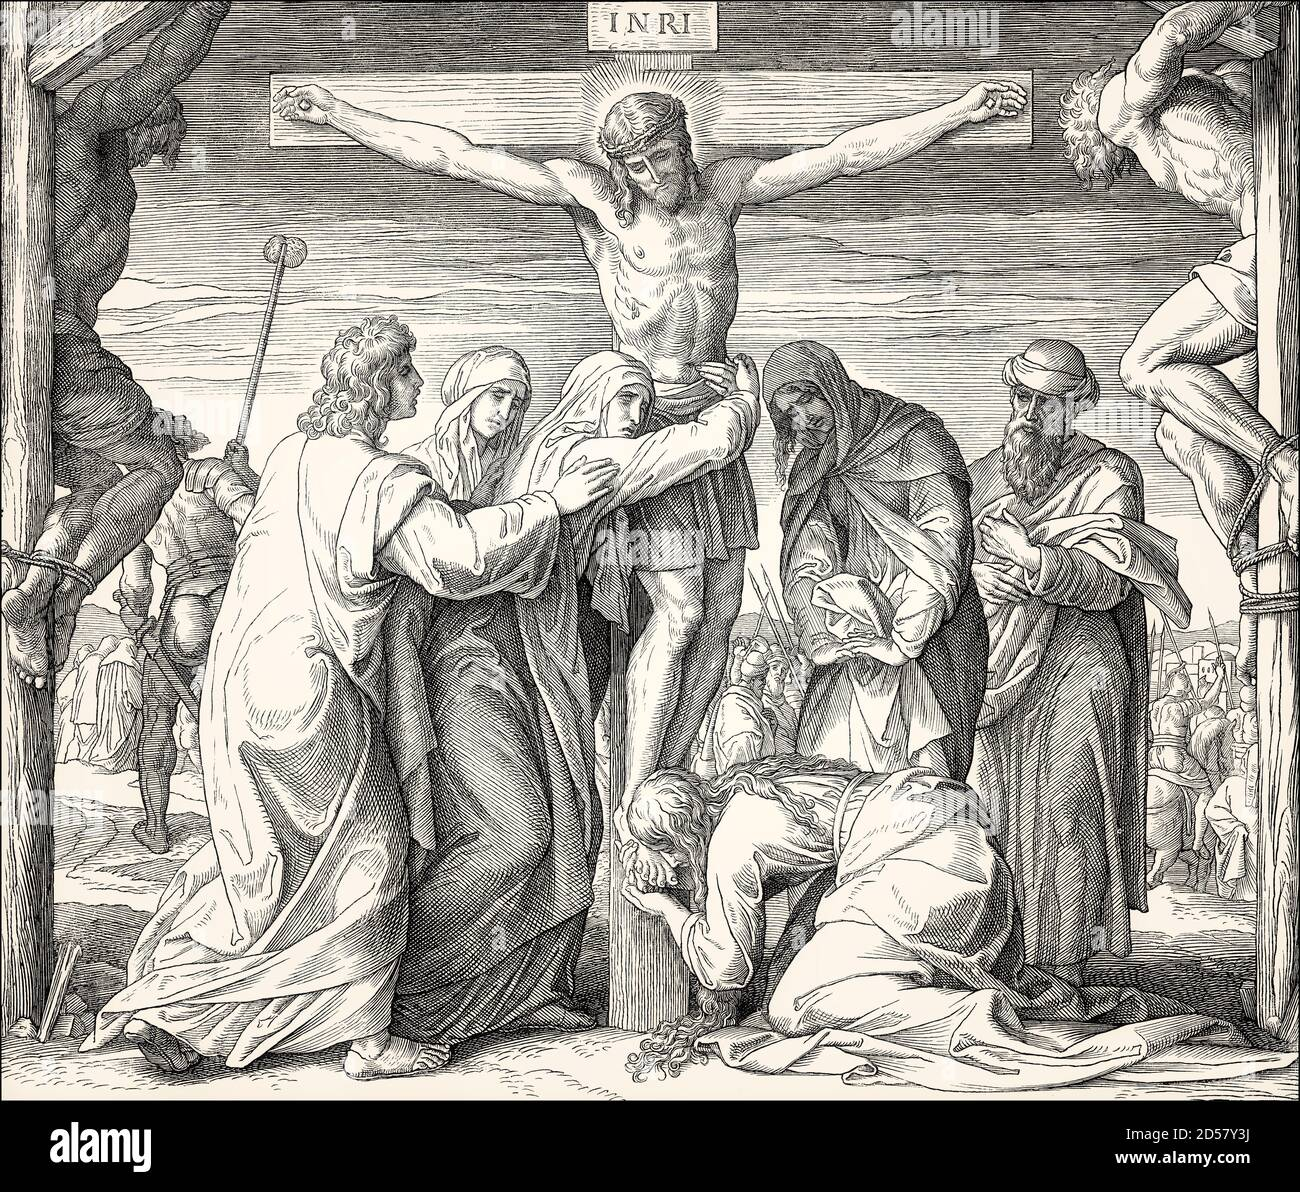 The Crucifixion of Jesus, by Julius Schnorr von Carolsfeld, 1860 Stock Photo